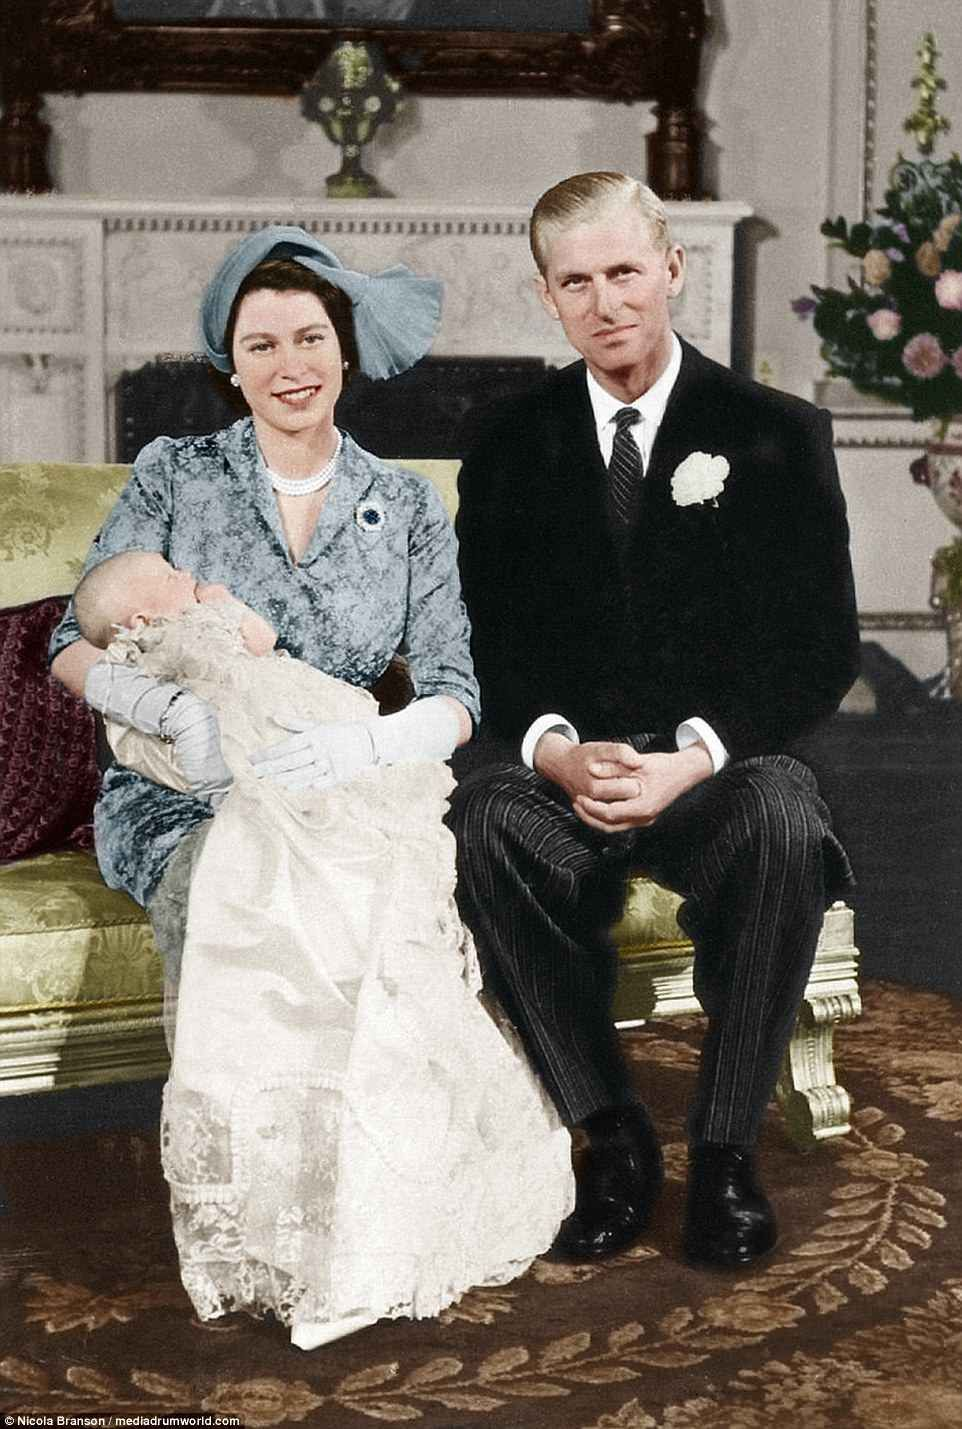 Incredible pictures of the Royal Family in colour going